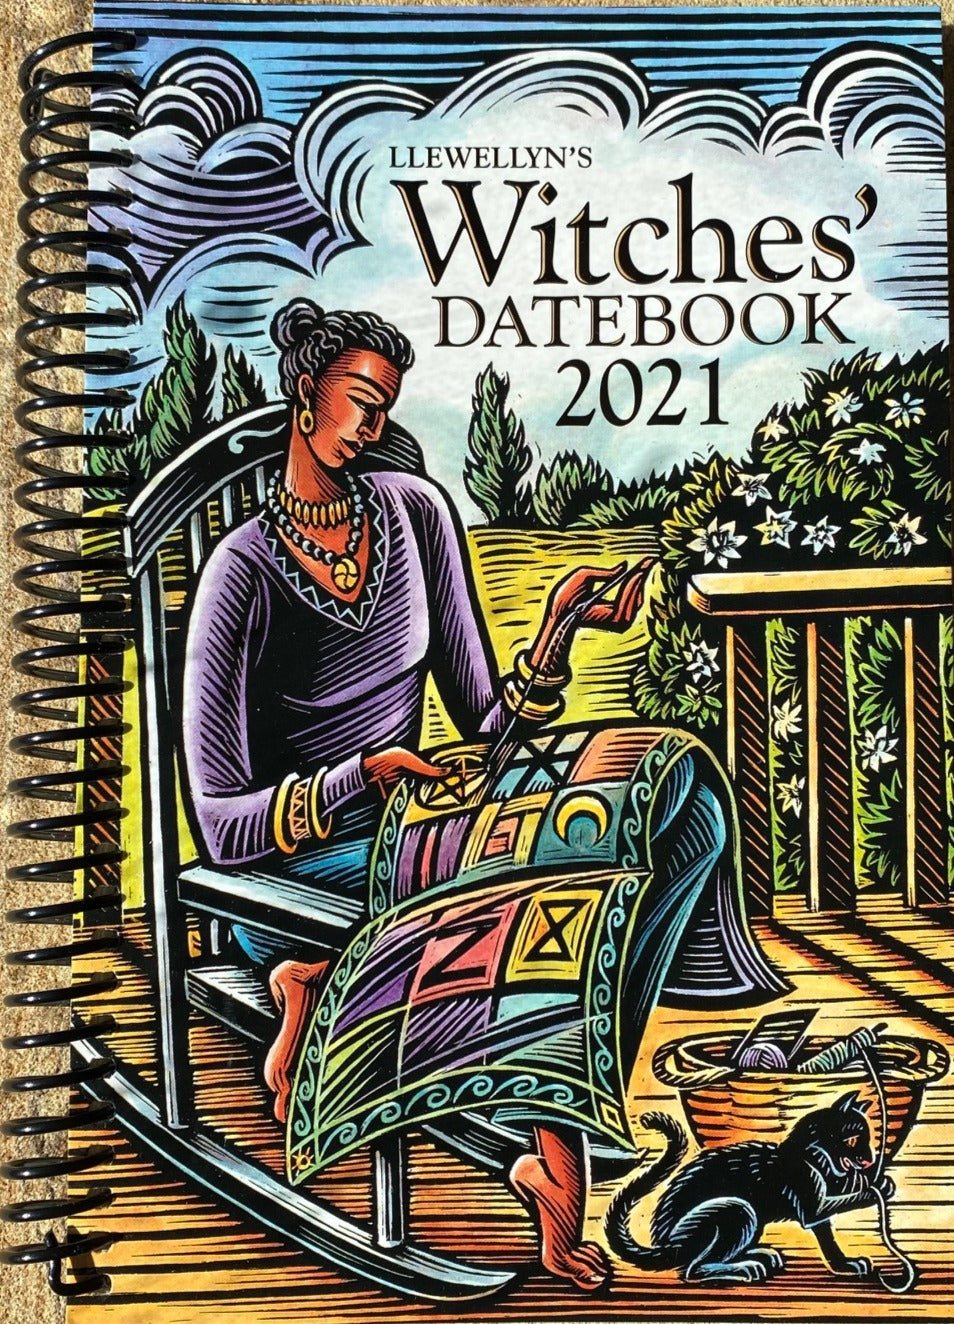 Llewellyn's Witches' Datebook for 2021.  6